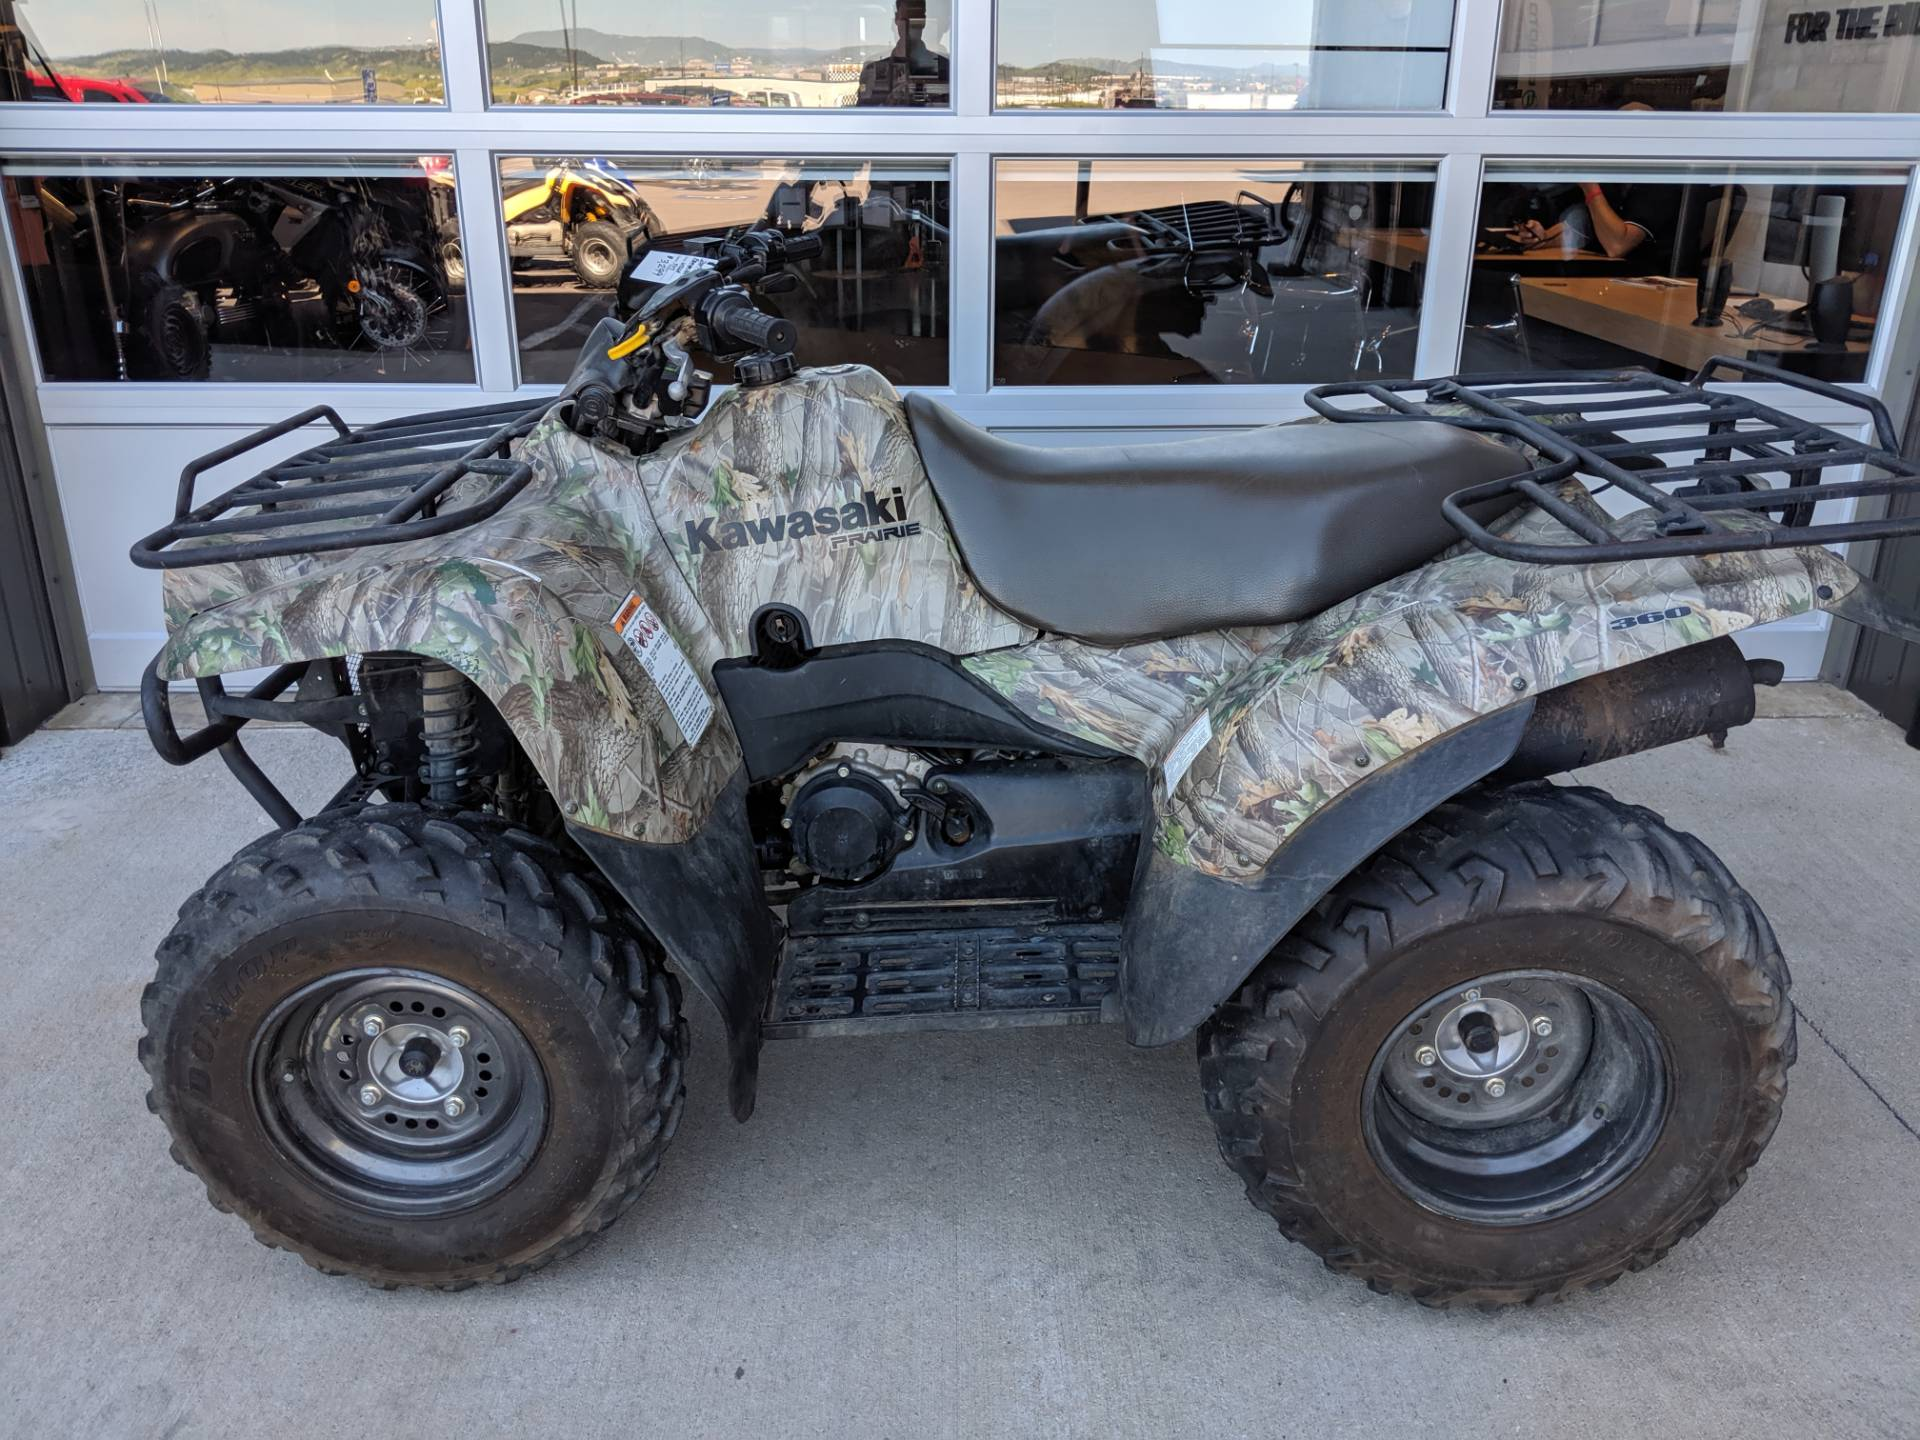 2007 Kawasaki Prairie® 360 4x4 ATVs Rapid City South Dakota